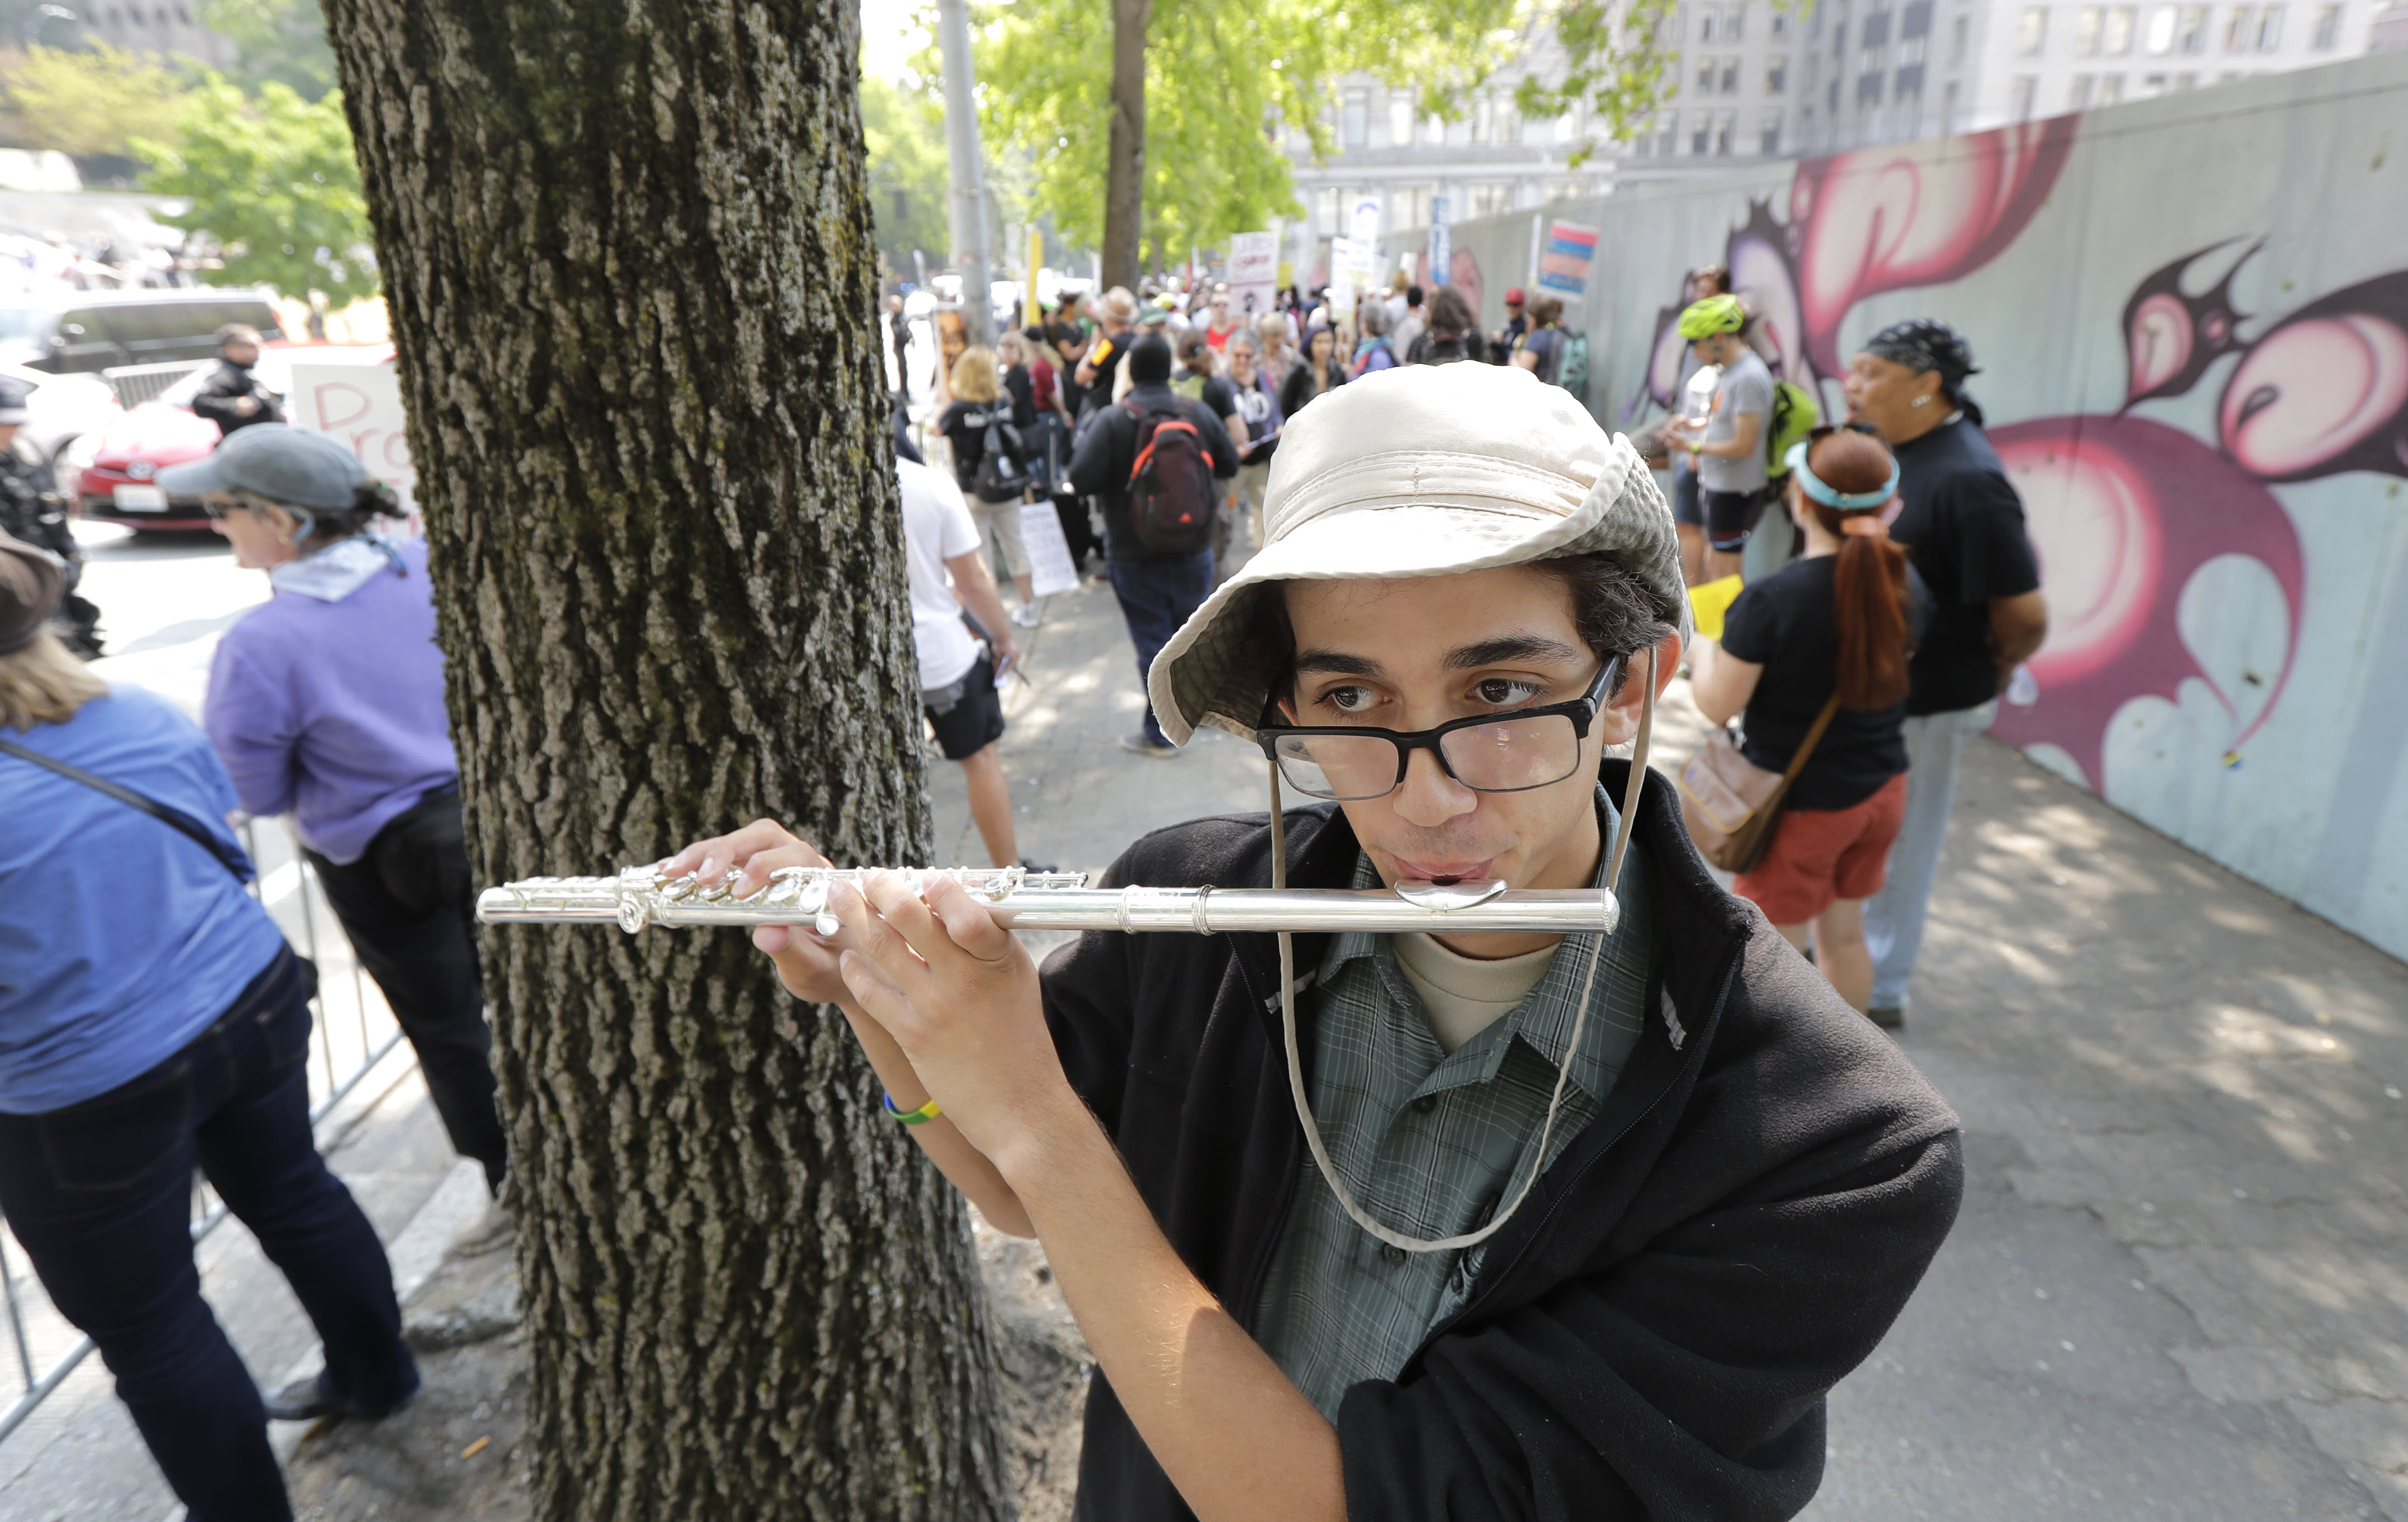 Mikaele Baker plays the flute as he stands on the side of the street of anti-fascist groups counter-protesting as members of Patriot Prayer and other groups supporting gun rights demonstrate across the street during a rally, Saturday, Aug. 18, 2018, at City Hall in Seattle. (AP Photo/Ted S. Warren)